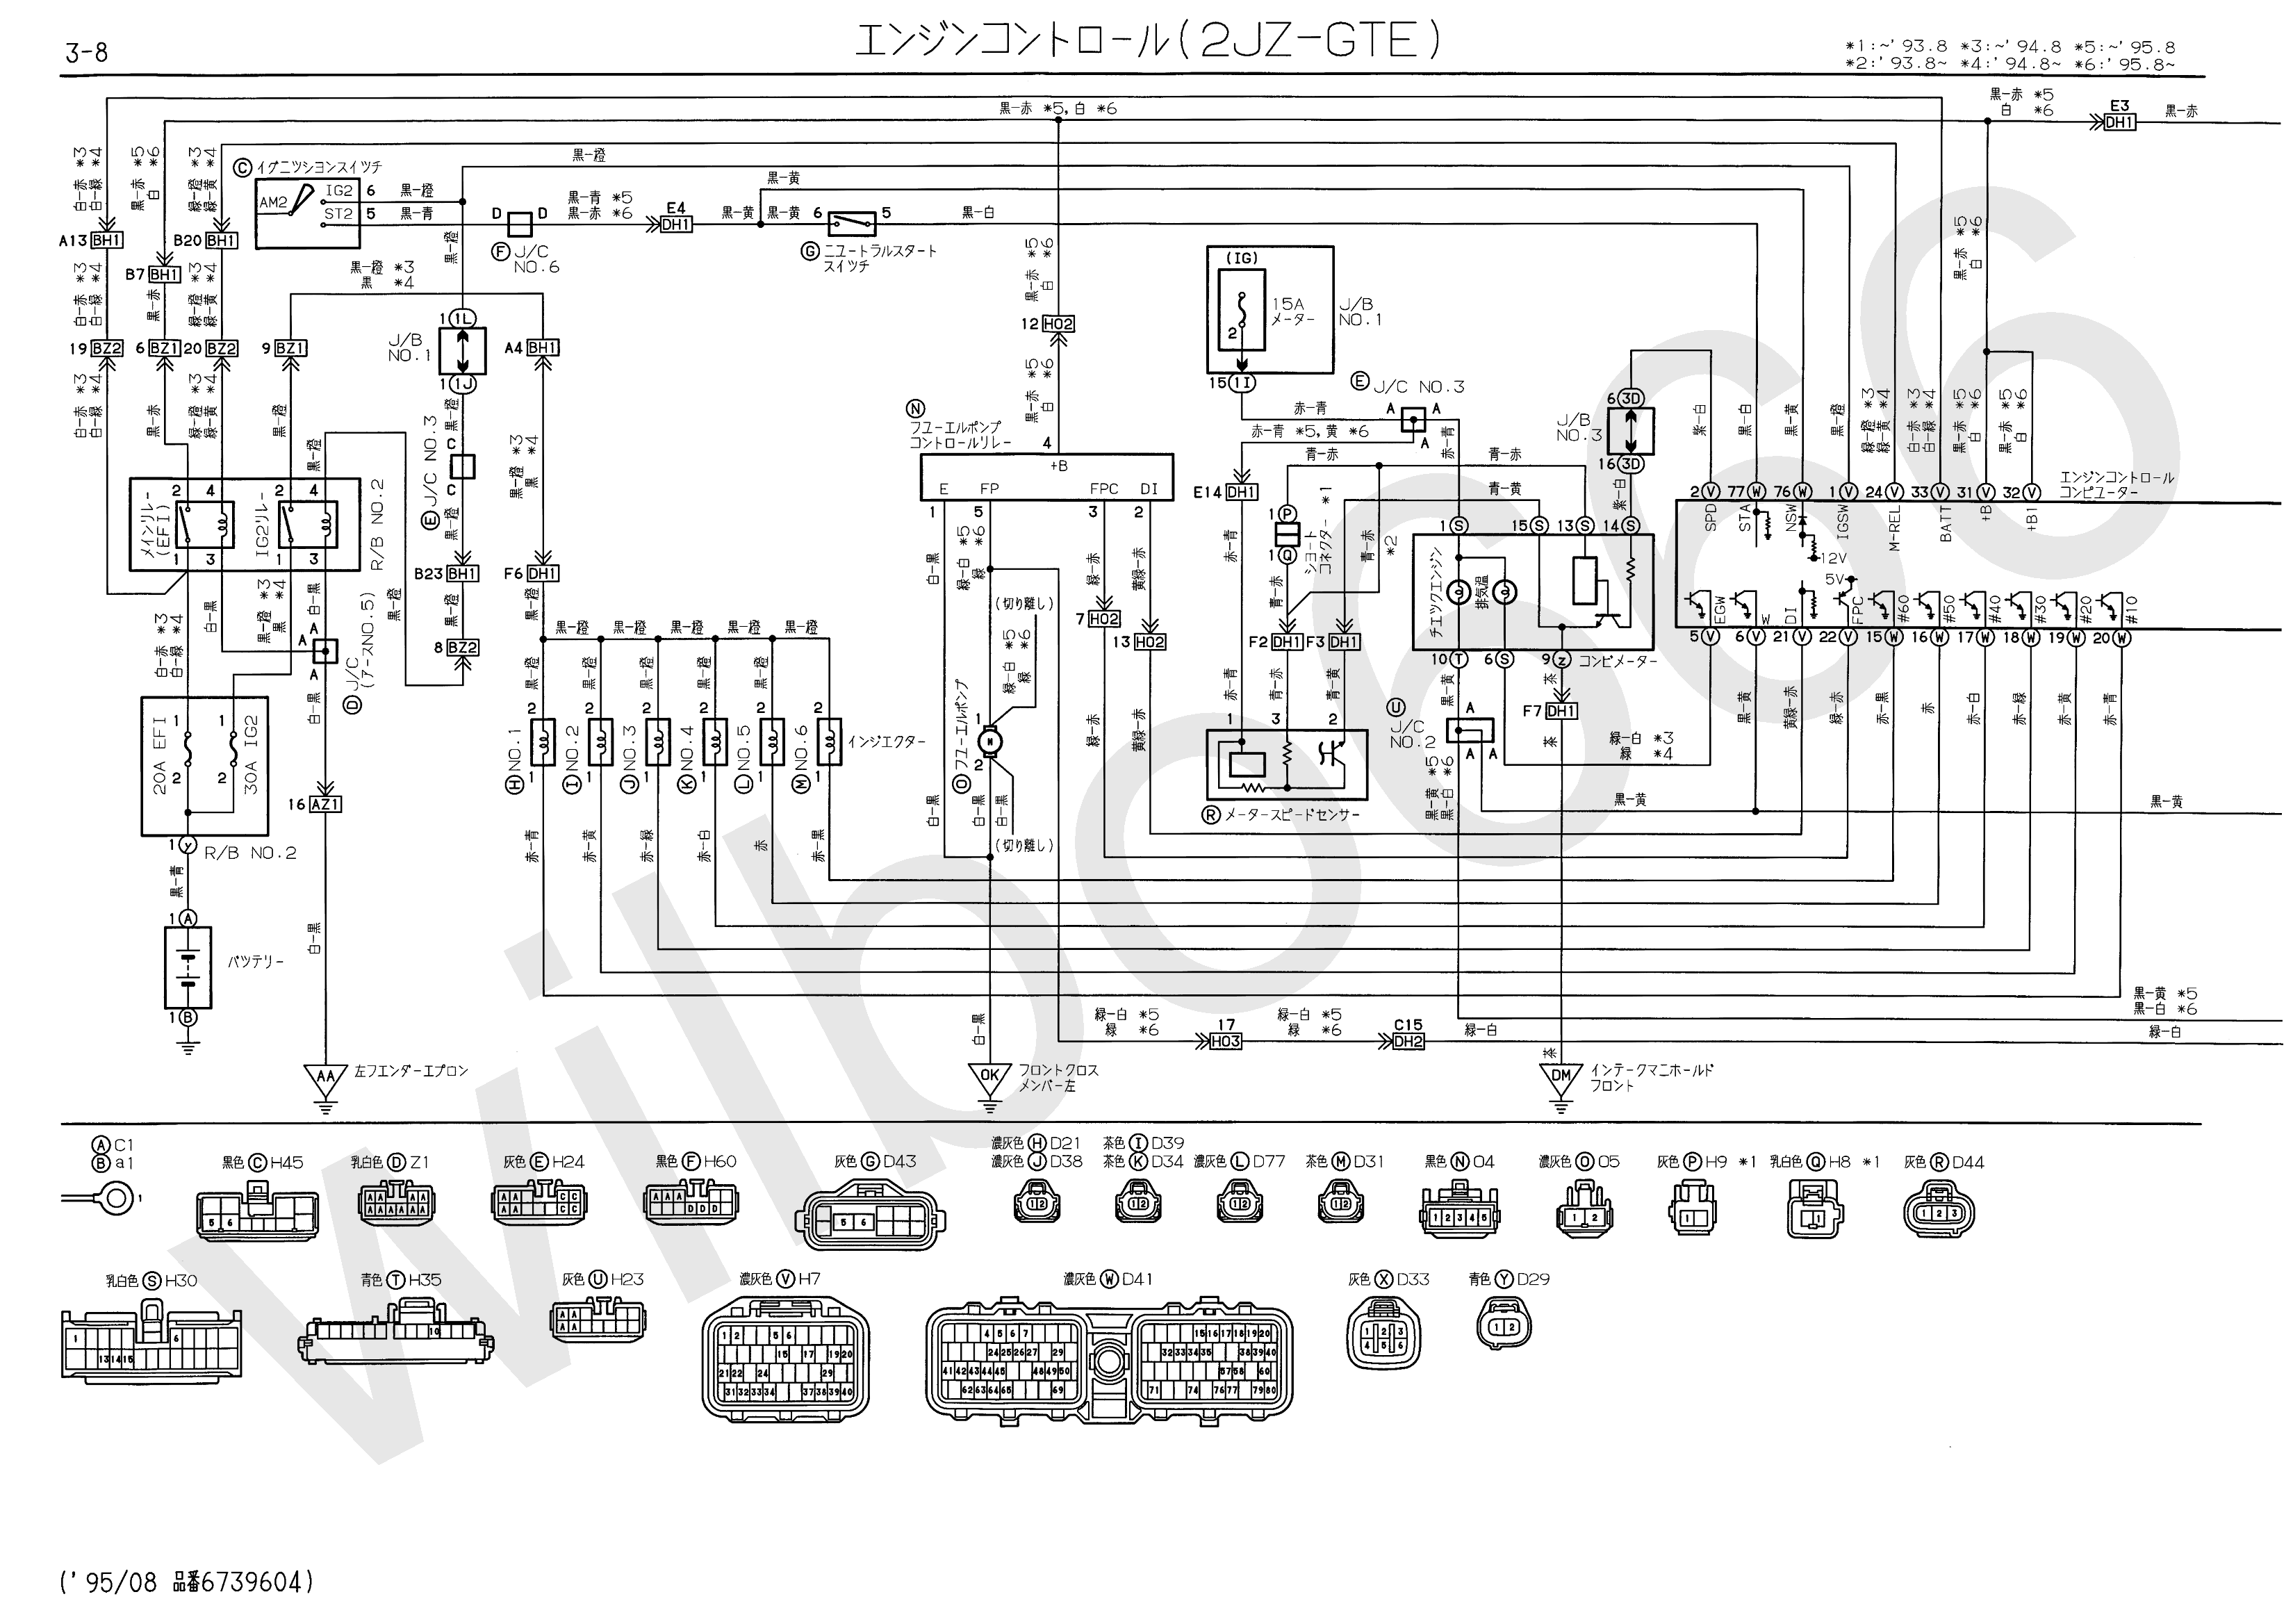 Wilbo666 2jz Gte Jzs147 Aristo Engine Wiring 5 3 Harness Diagram Toyota Diagrams